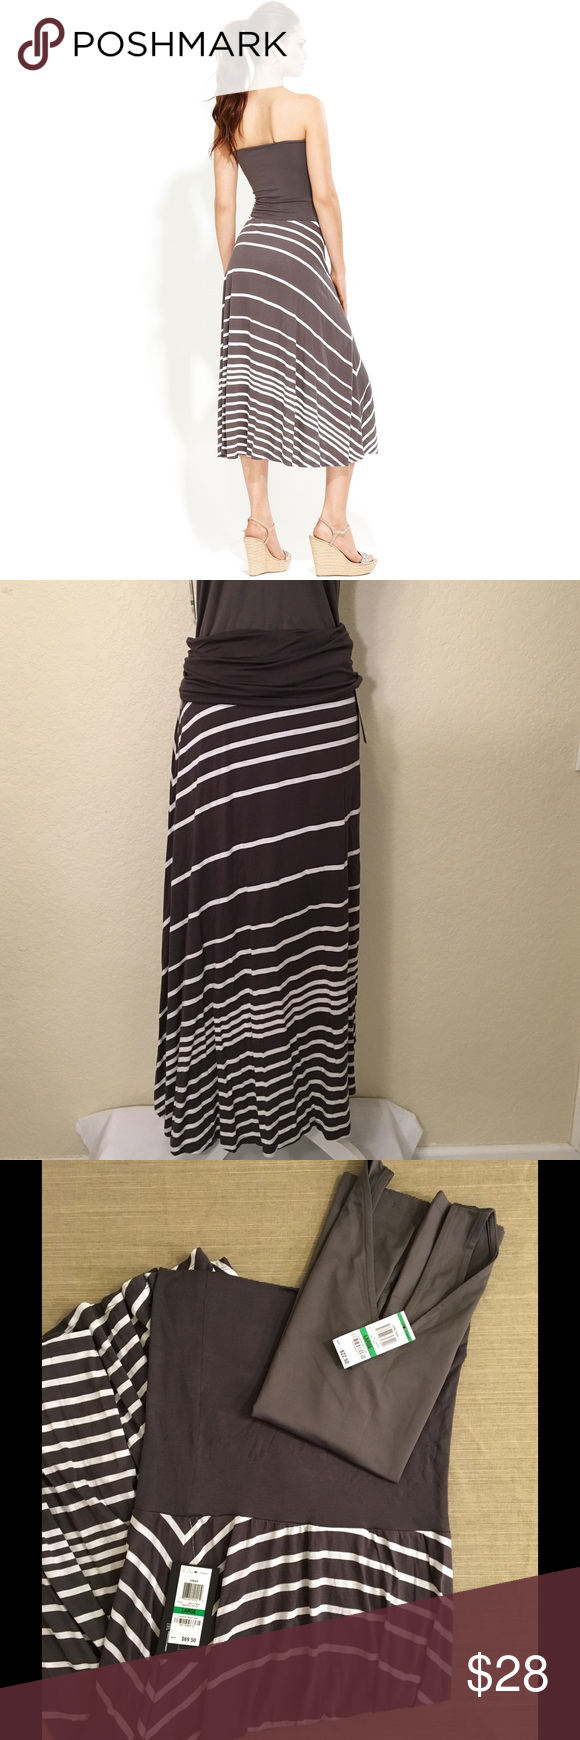 """NWT INC Gray Striped """"Convertible"""" Dress Sz L.  Can be worn as a dress or skirt!  MSRP $69.  Length: 44"""".  15"""" with across top solid grey band.  Waist: 34"""".  Bottom: 120"""" around.  Poly/rayon/spandex blend.  Machine wash cold.      Selling matching Grey """"Convertible"""" Tank Top.  Can be worn as a scoop or v-neck.  Purchase as a set for $32 - 20% off combined price! Please message me if you'd like to buy both.     Love it but not the price - I'm open to (reasonable) offers or consider bundling 2…"""